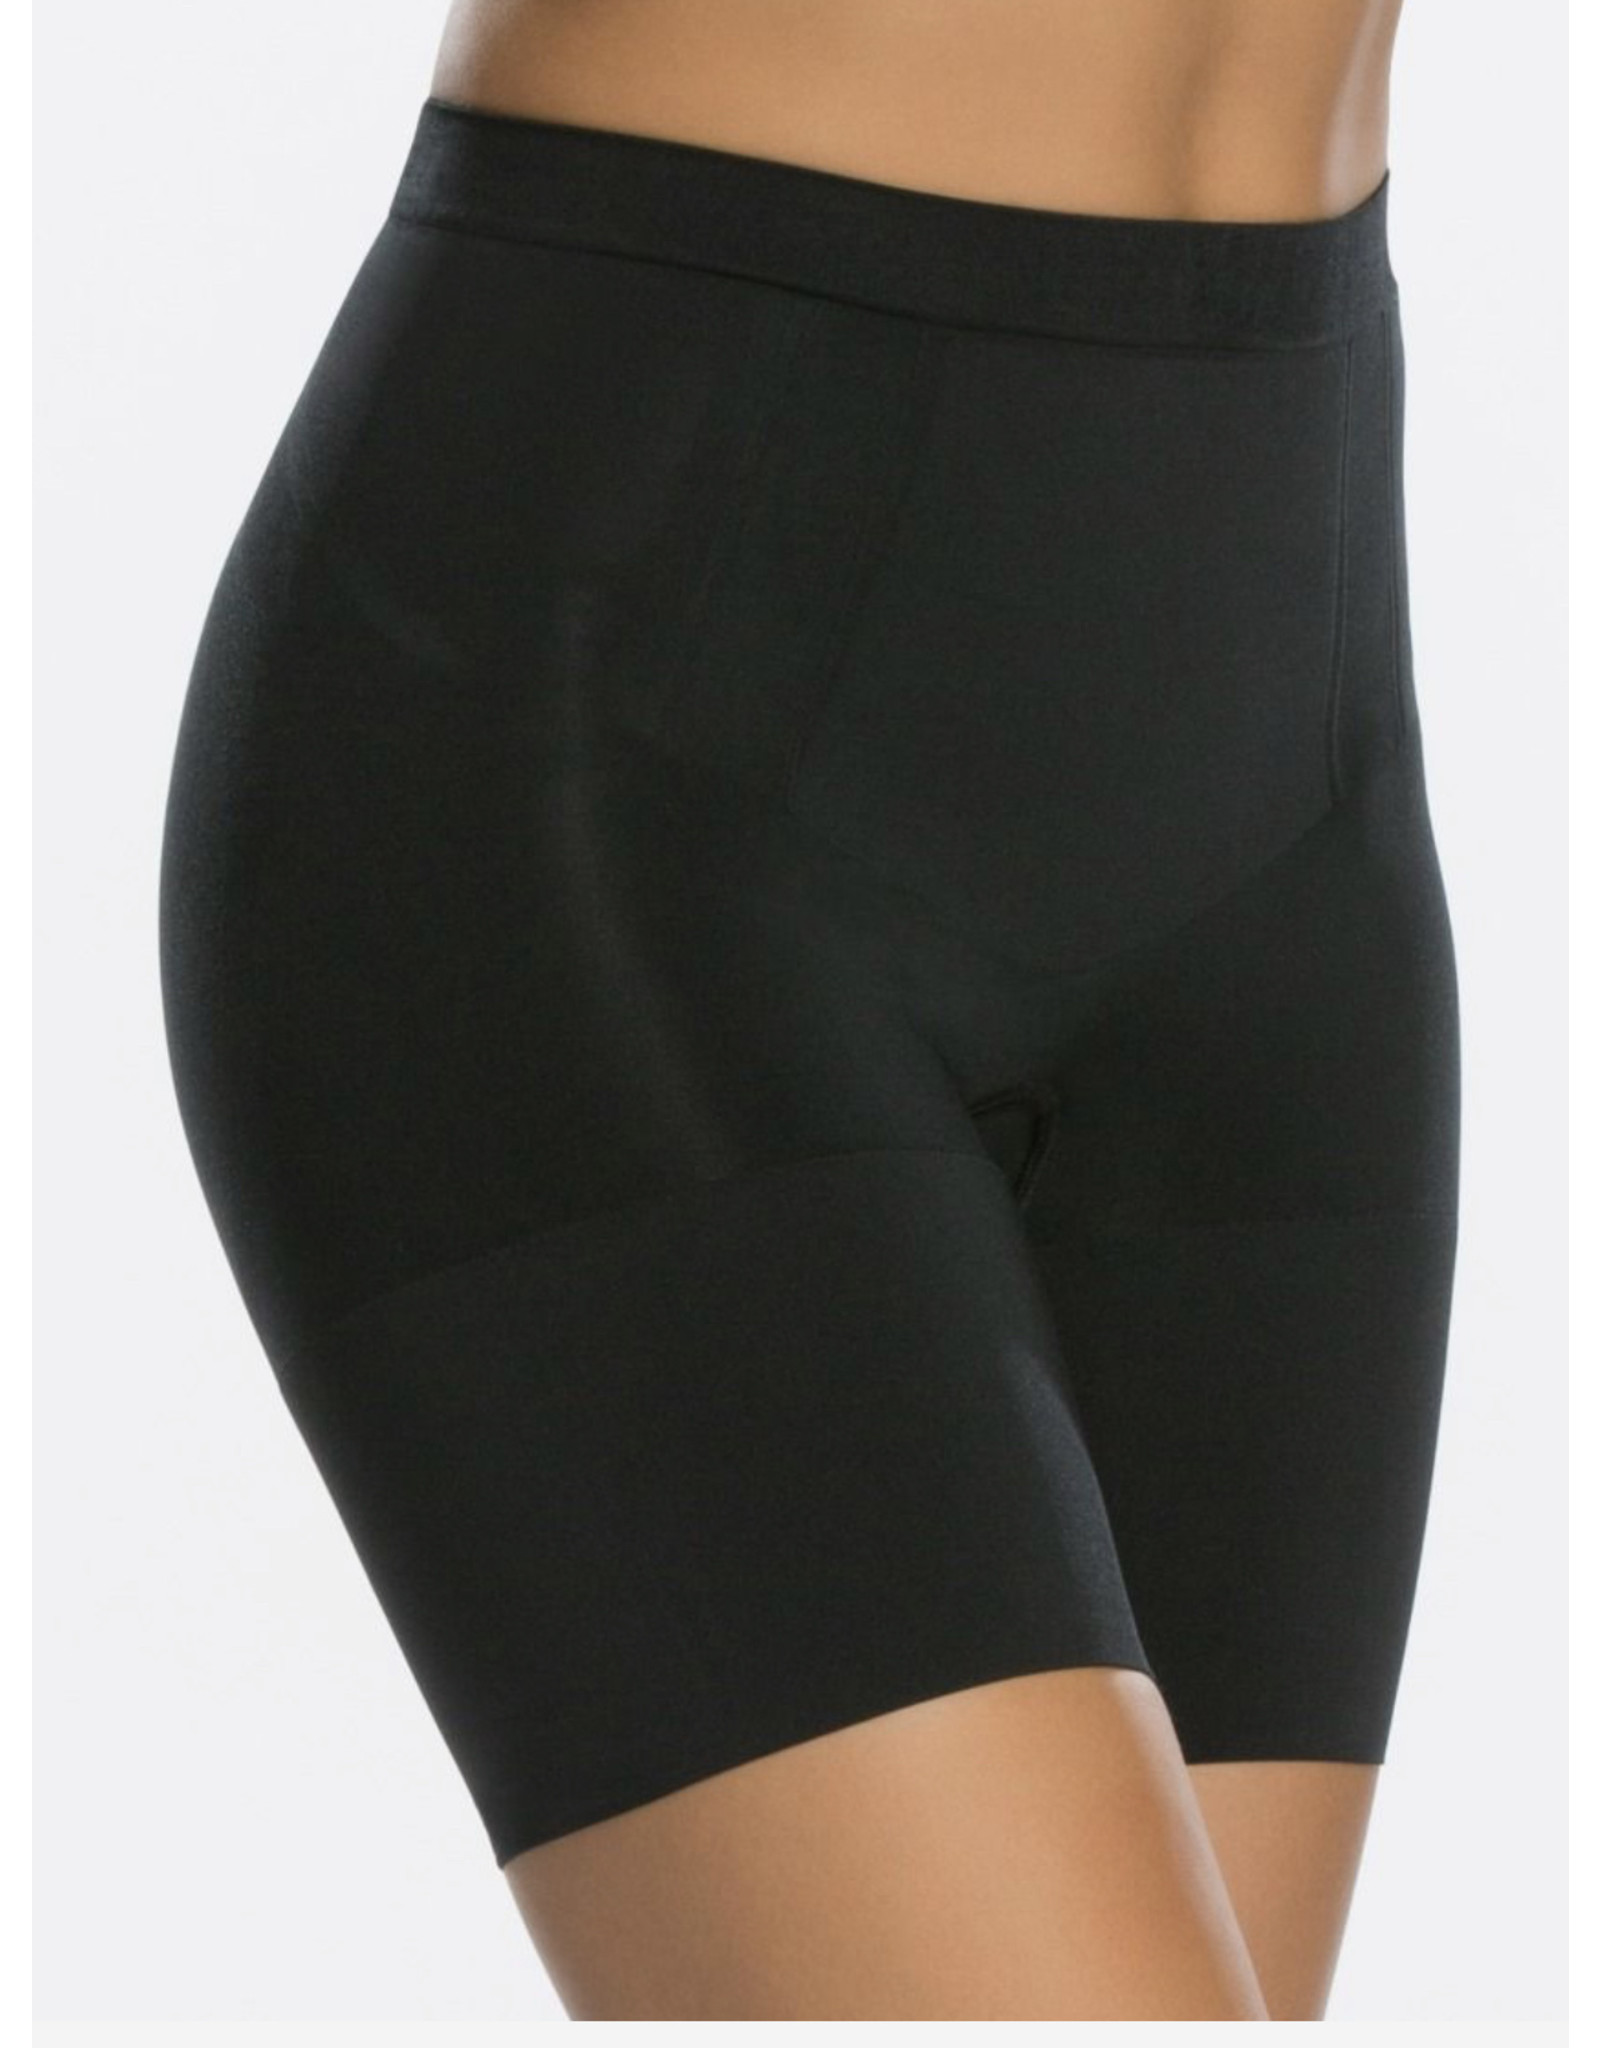 Spanx Spanx Women's Oncore Mid Thigh Shorts SS6615